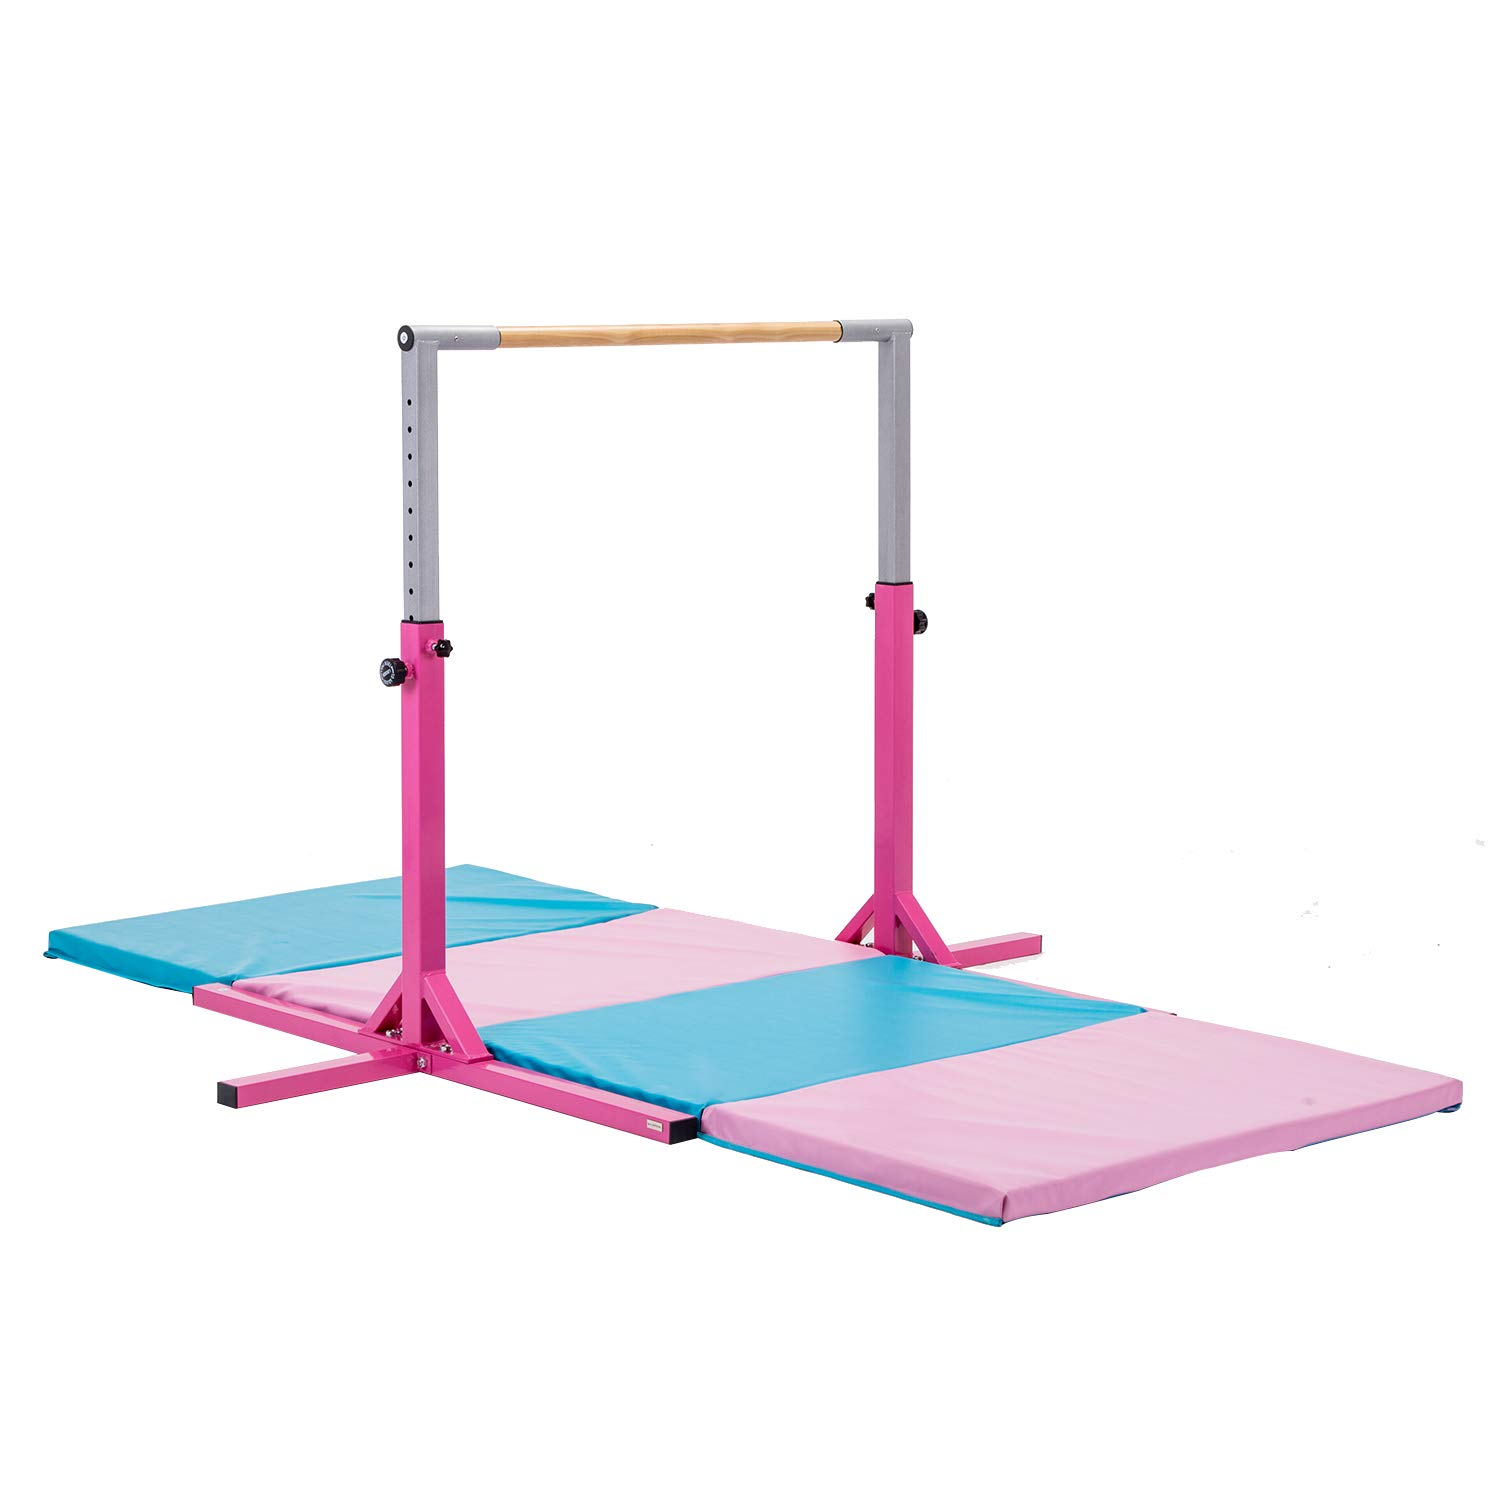 walsport Horizontal Bar with 10ft Folding Mat Combo Gymnastics Adjustable Height 3 to 4.6 Sturdy Expandable Gymnastics Equipment Junior Training for Young Gymnasts